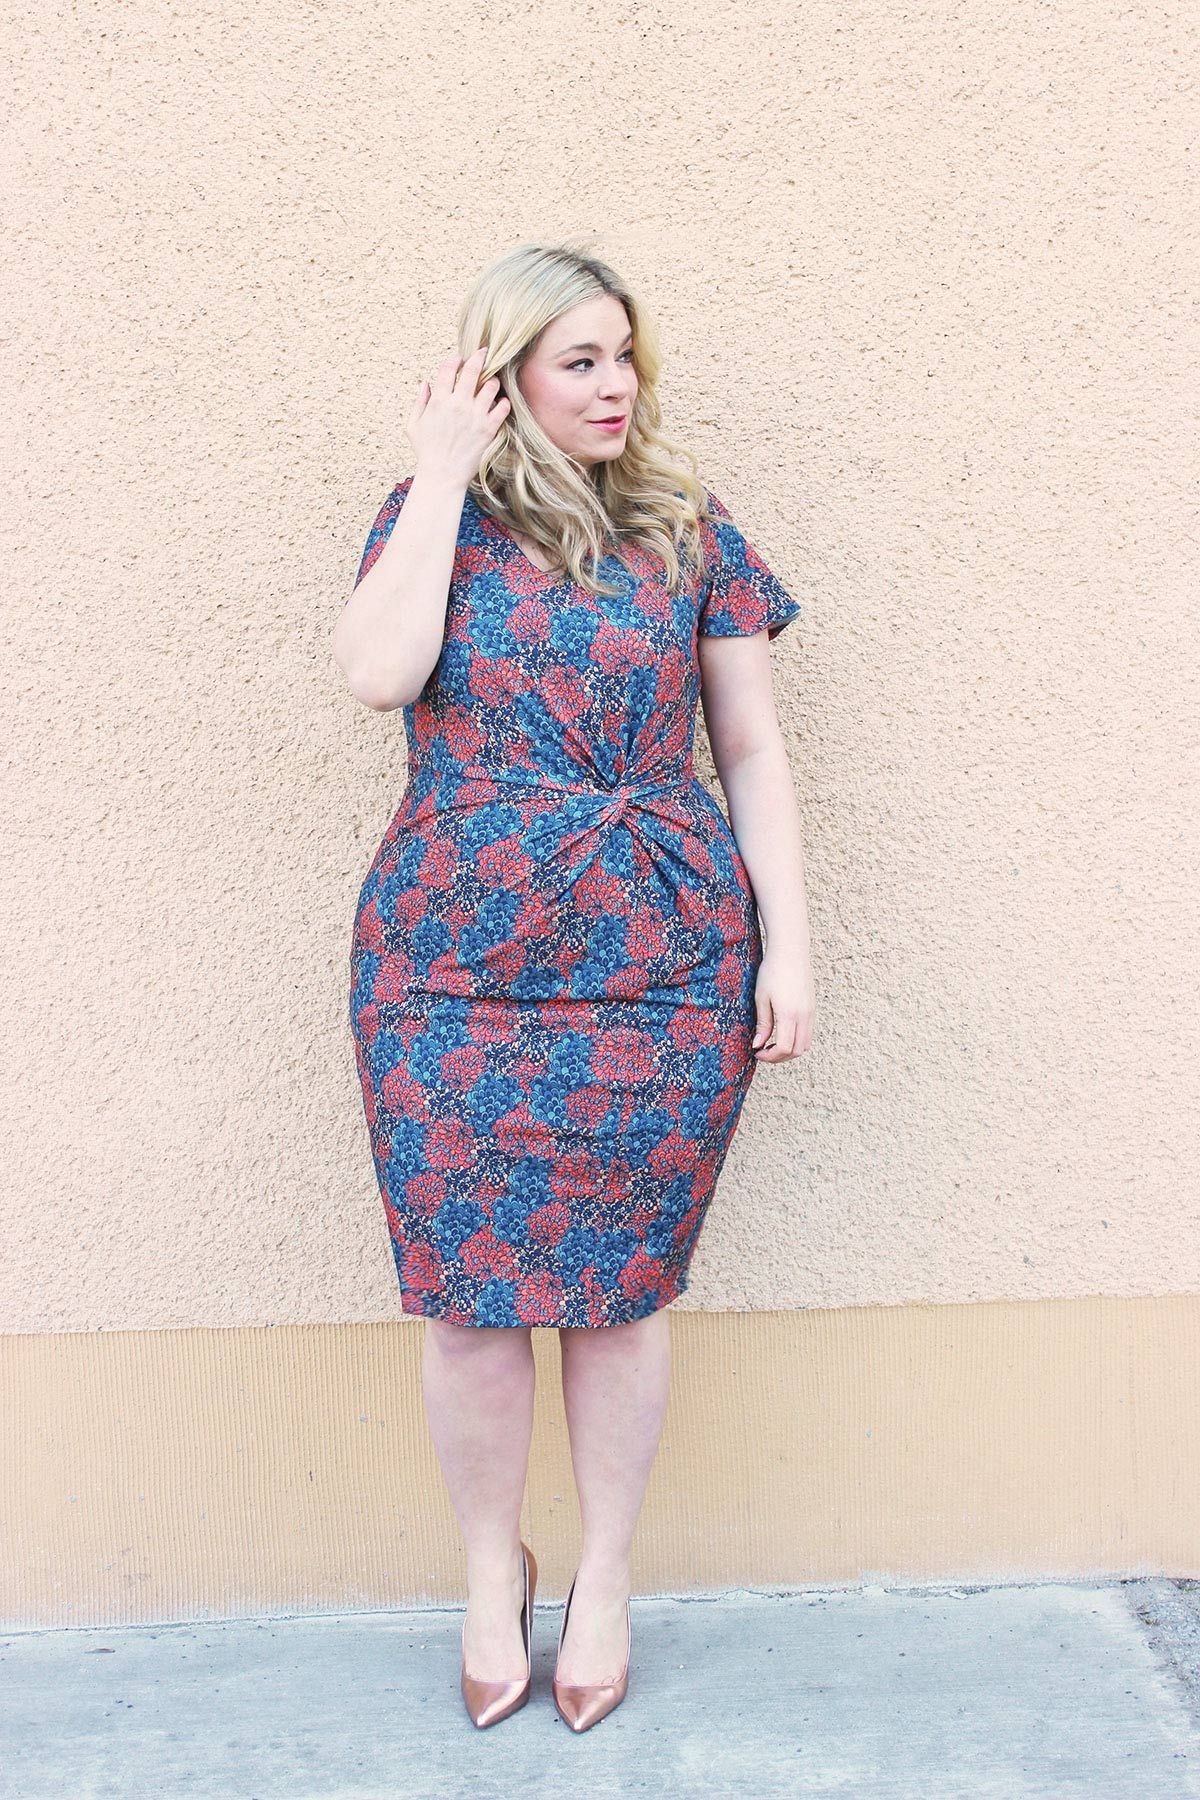 728b236709 German Plus Size Fashion Blogger Mega Bambi wearing Anna Scholz For Sheego  outfit